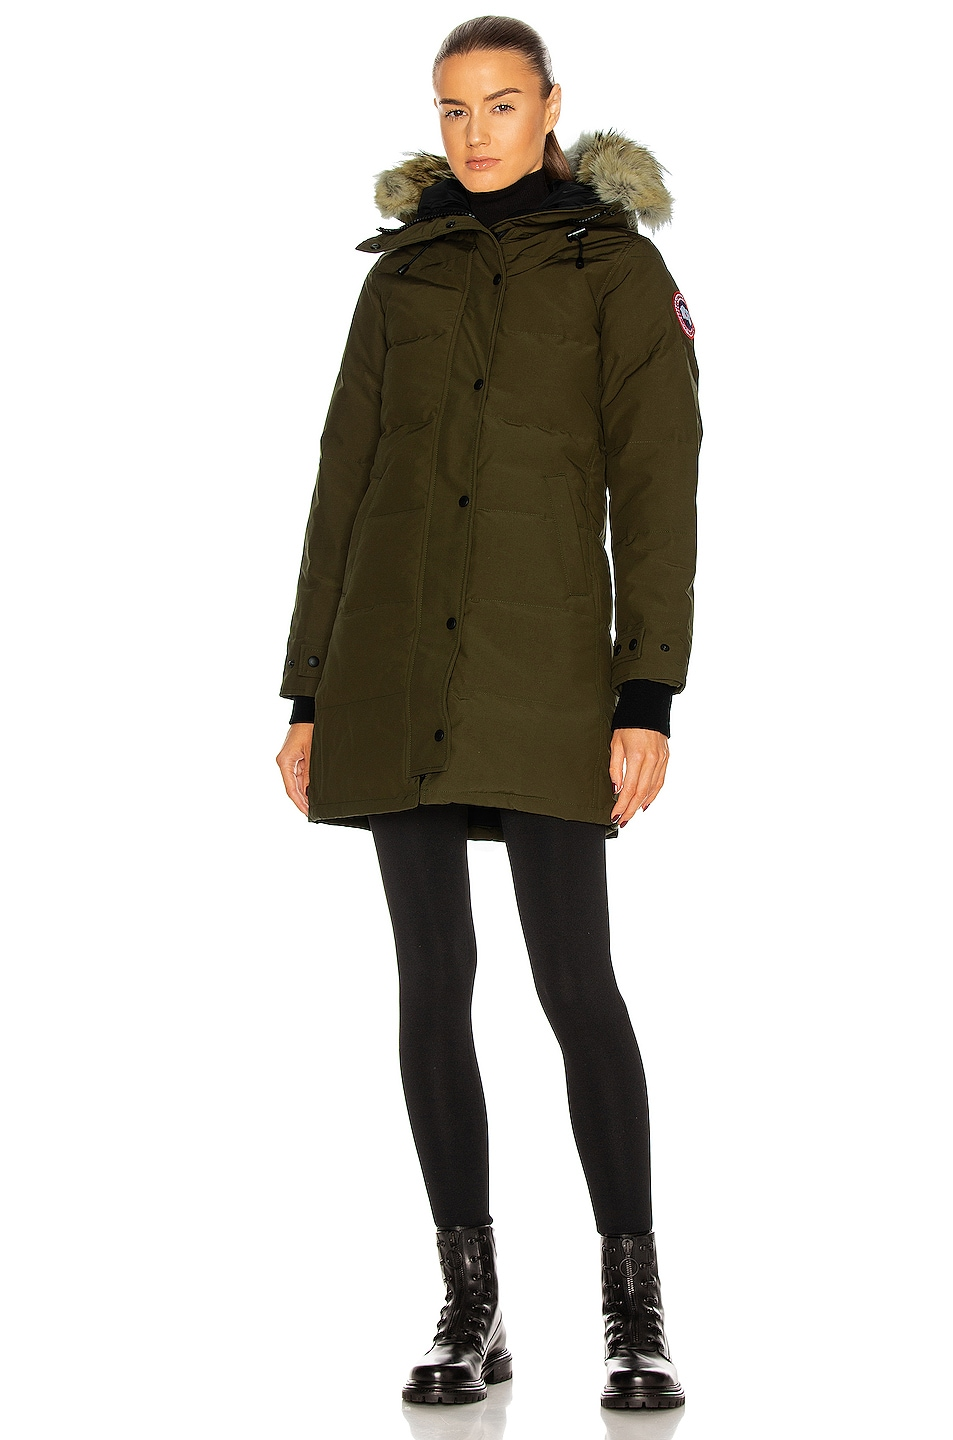 Image 2 of Canada Goose Shelburne Parka with Coyote Fur in Military Green